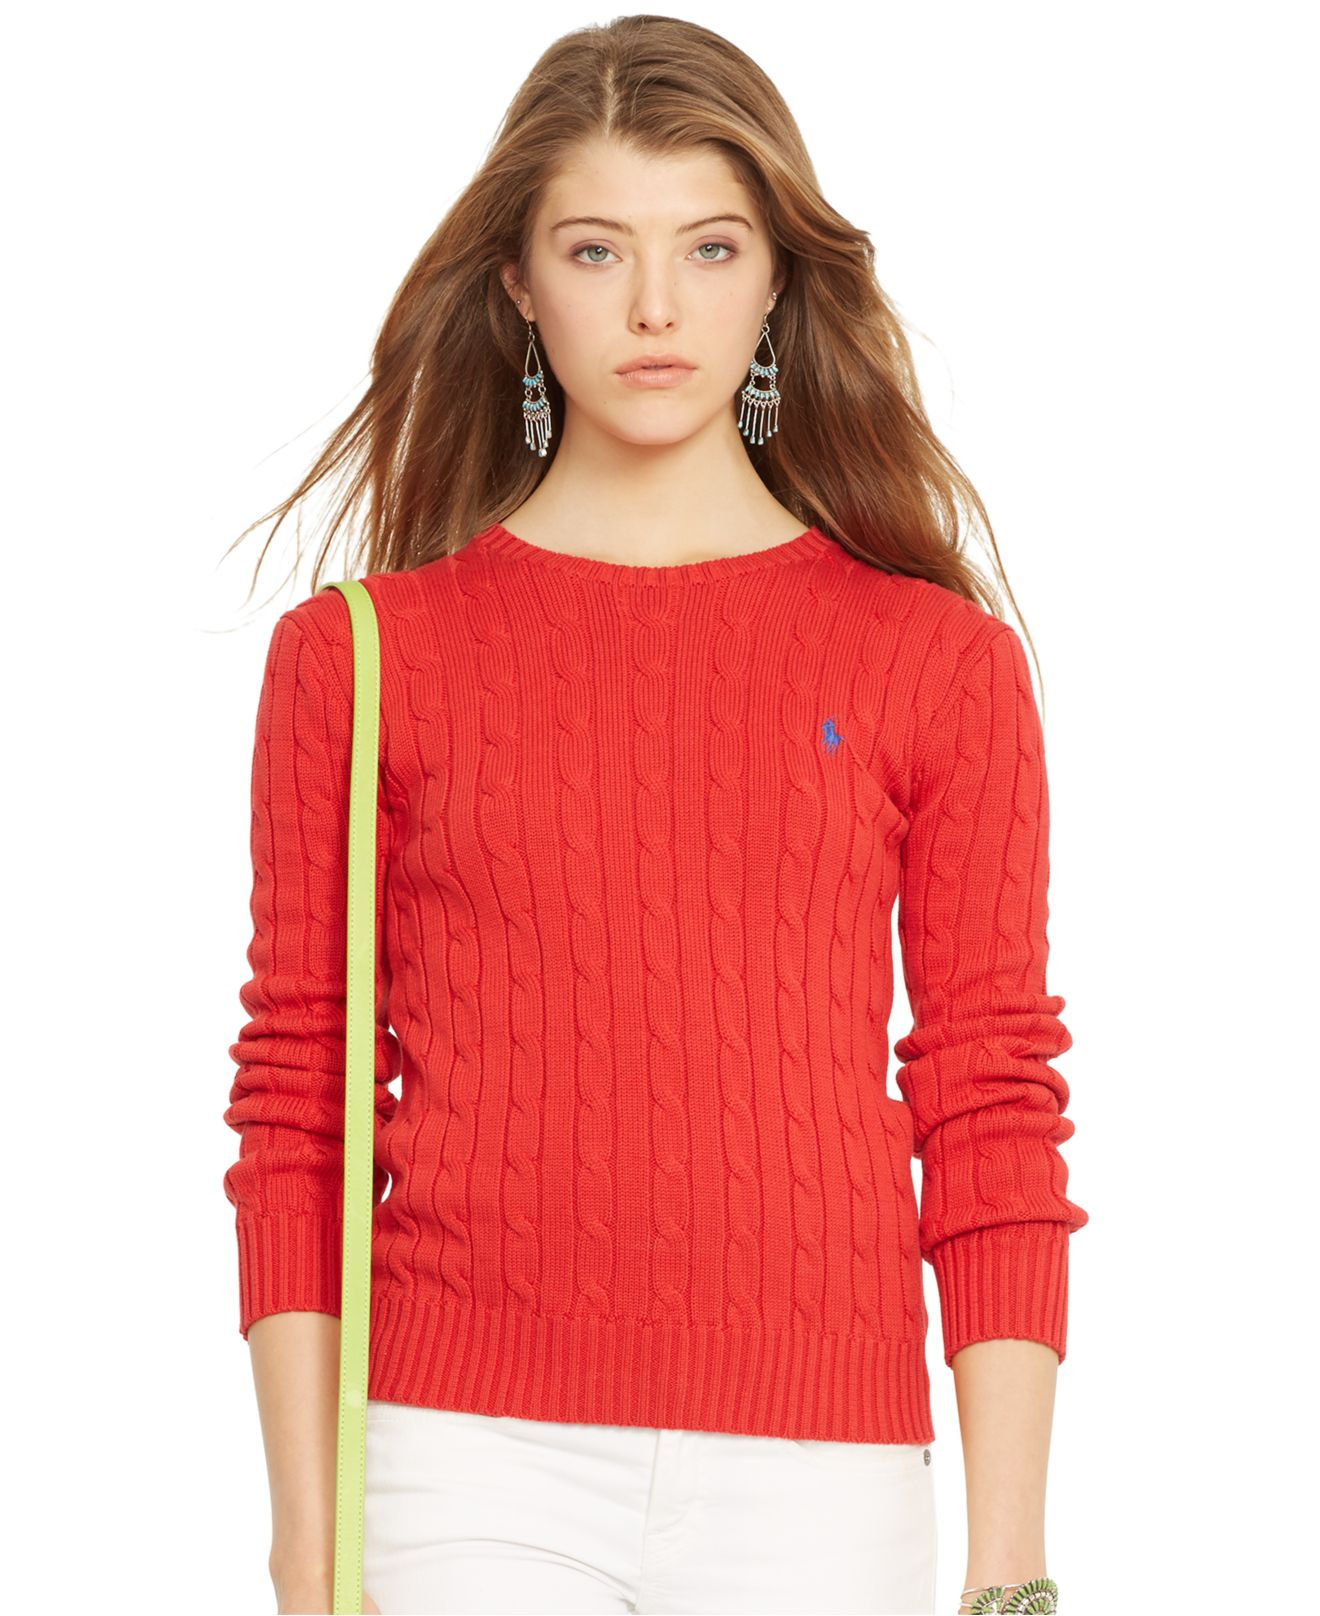 Polo ralph lauren Crew-Neck Cable-Knit Sweater in Red | Lyst